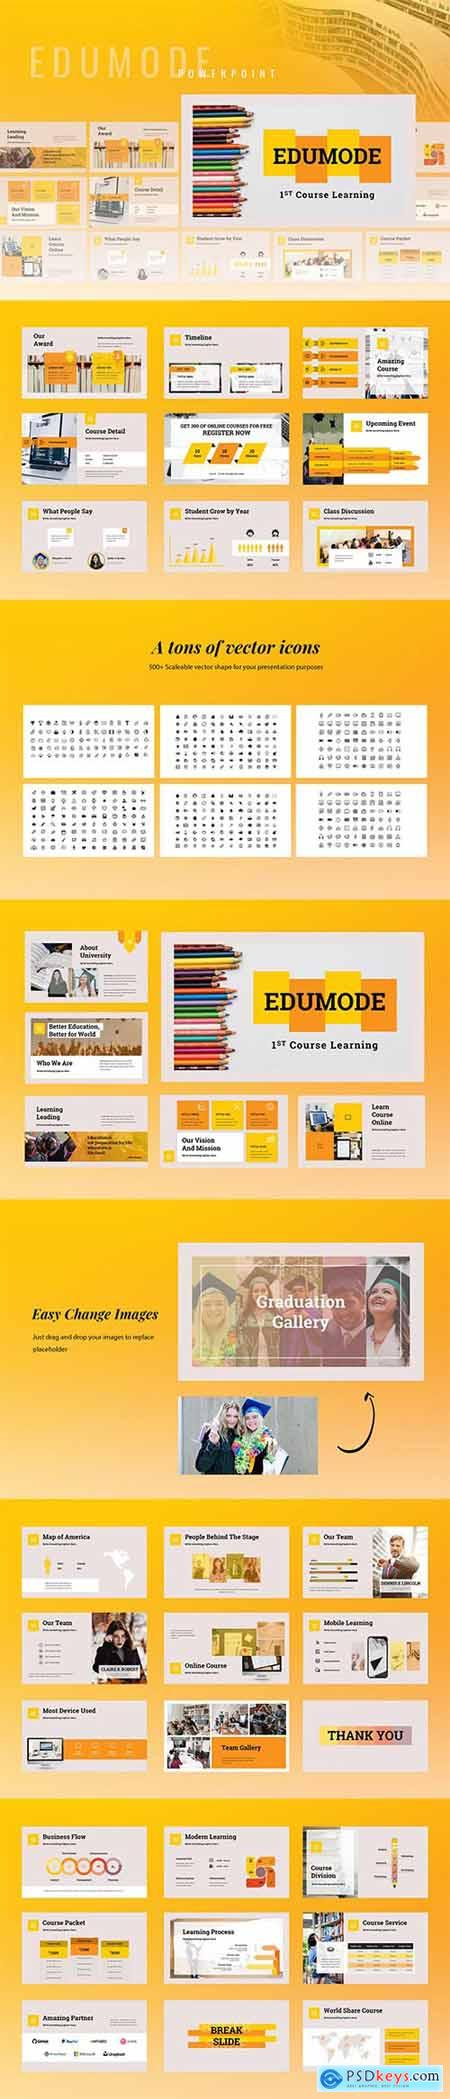 Edumode - Education Powerpoint Google Slides and Keynote Templates